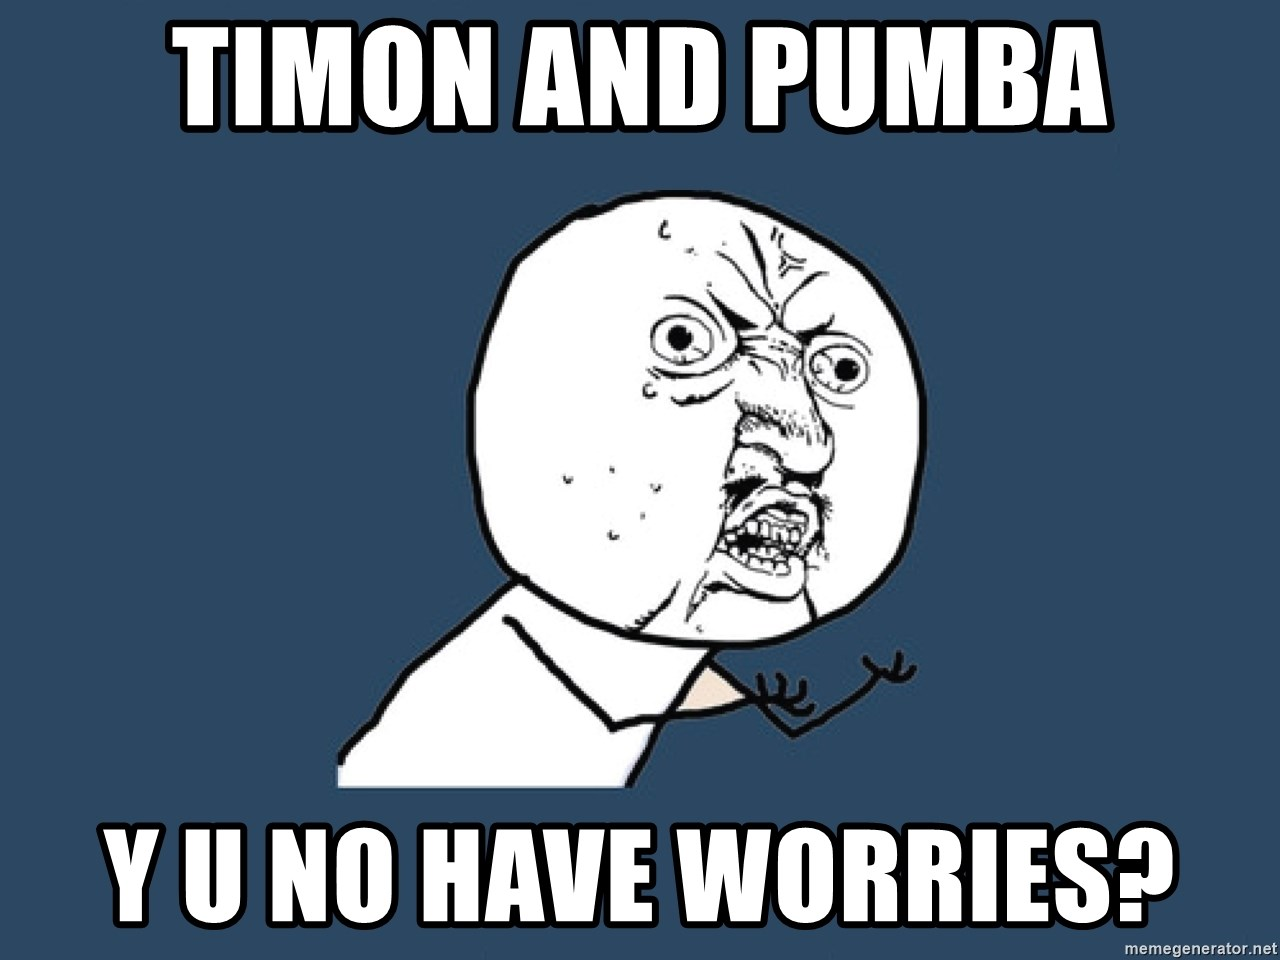 Y U No - Timon and pumba y u no have worries?